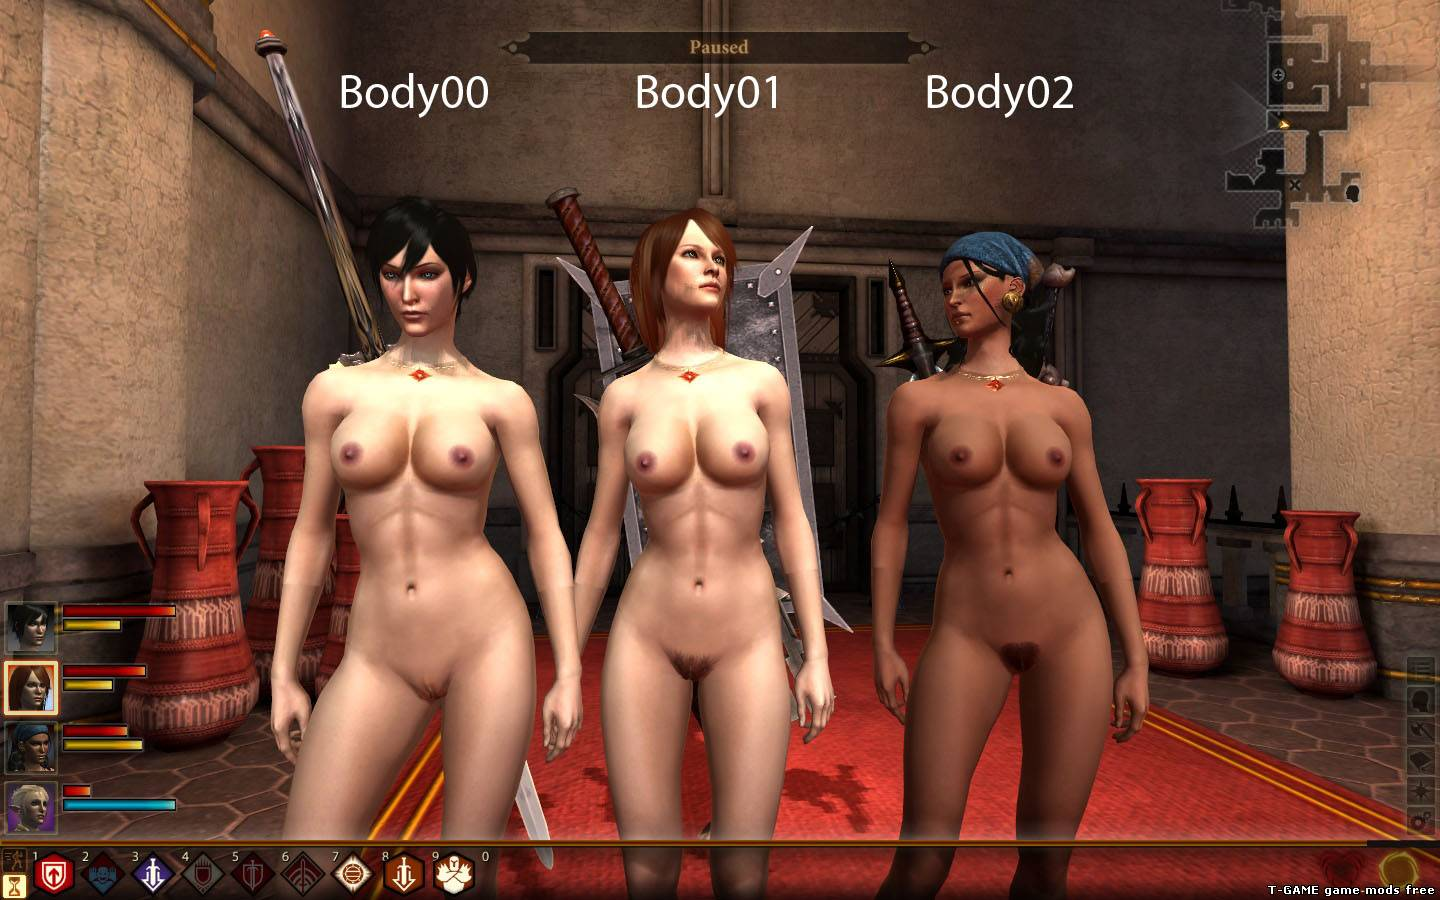 Dragon age nude sex mod fucked photo